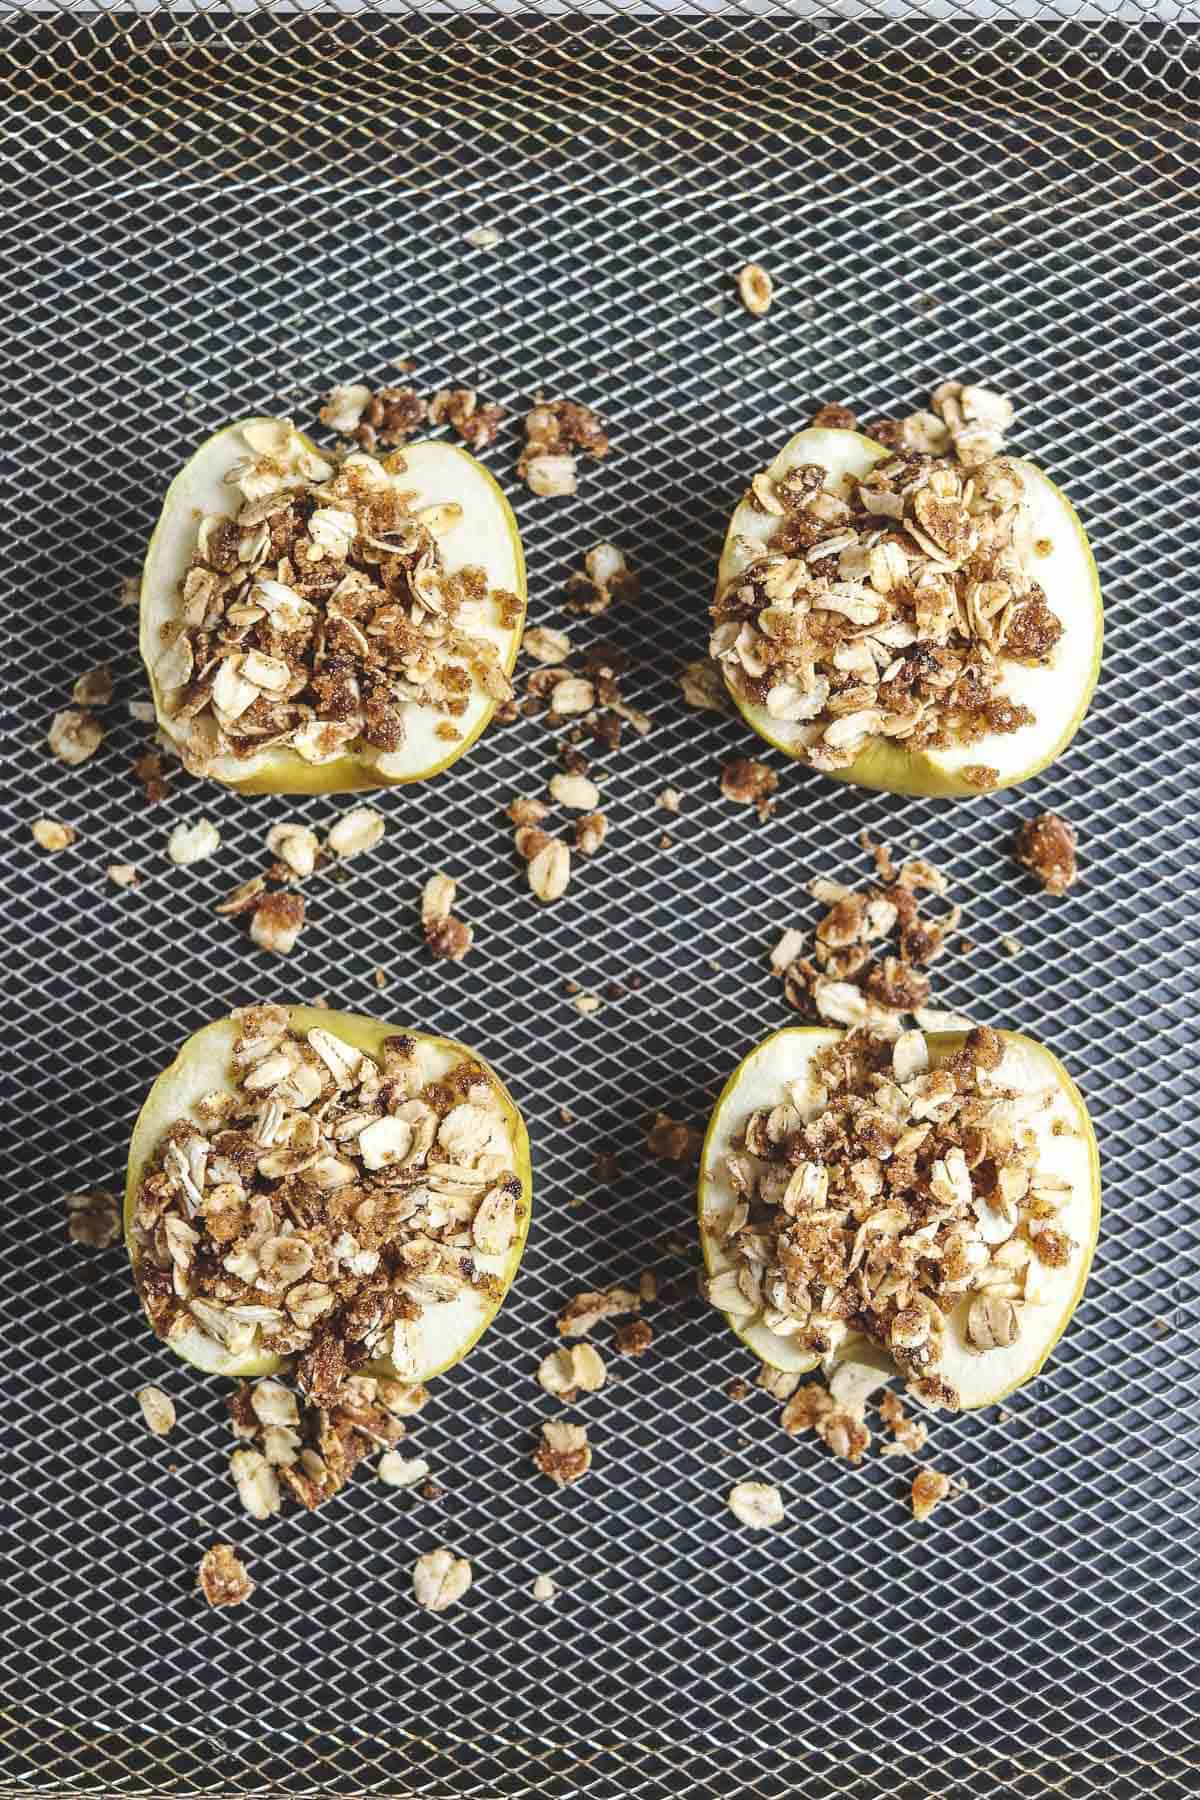 apple halves topped with oat topping in air fryer basket